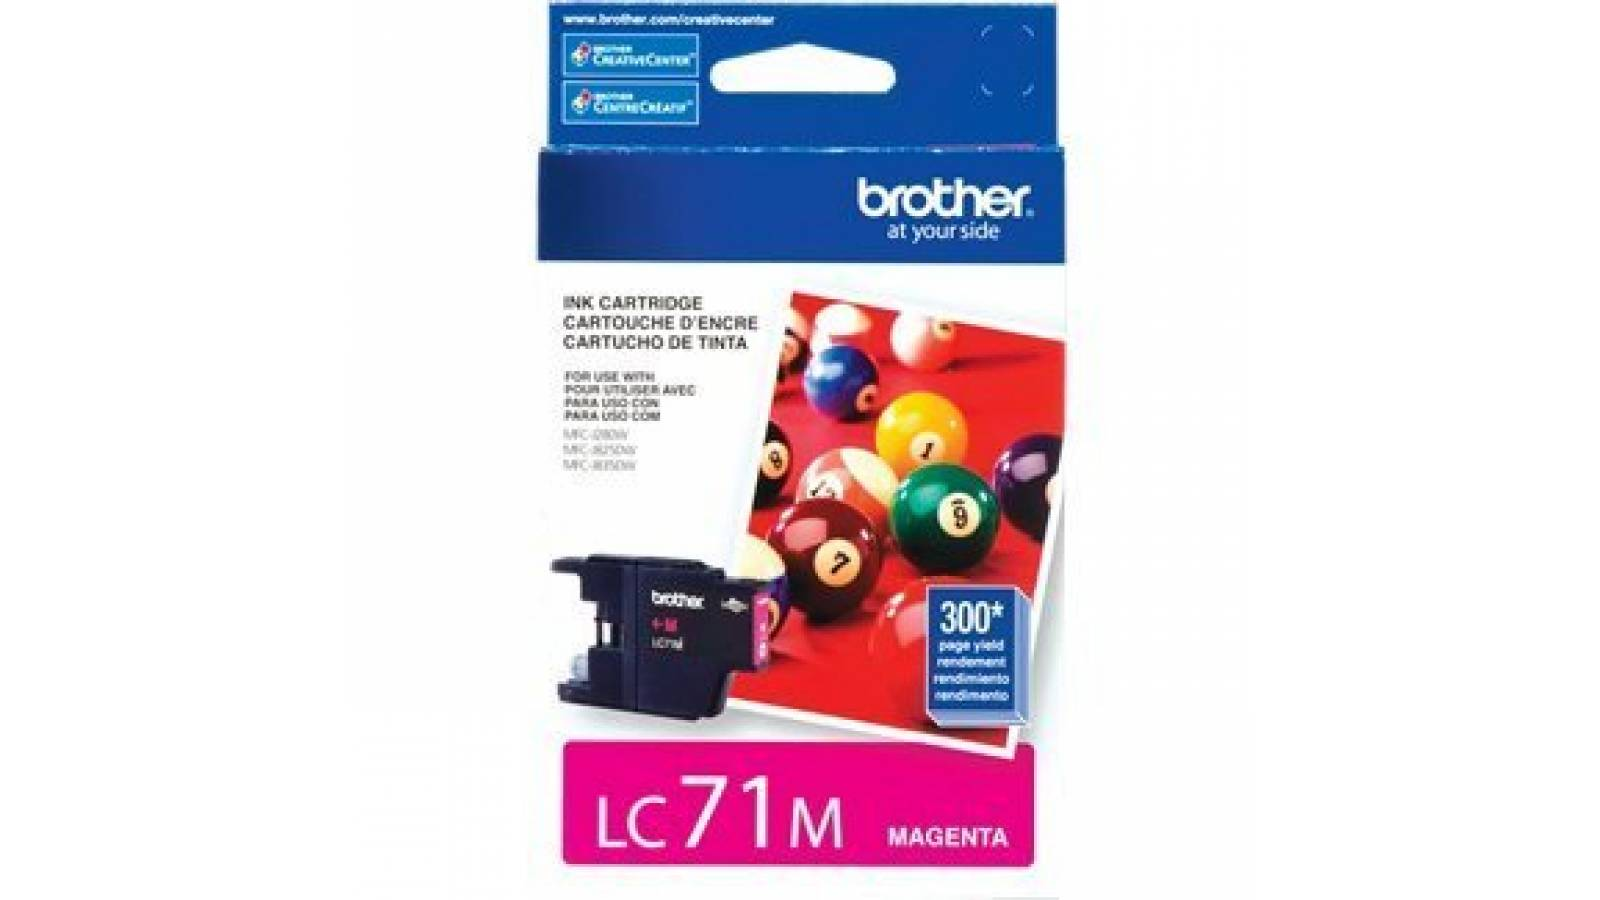 Cartucho de tinta Brother LC-71M